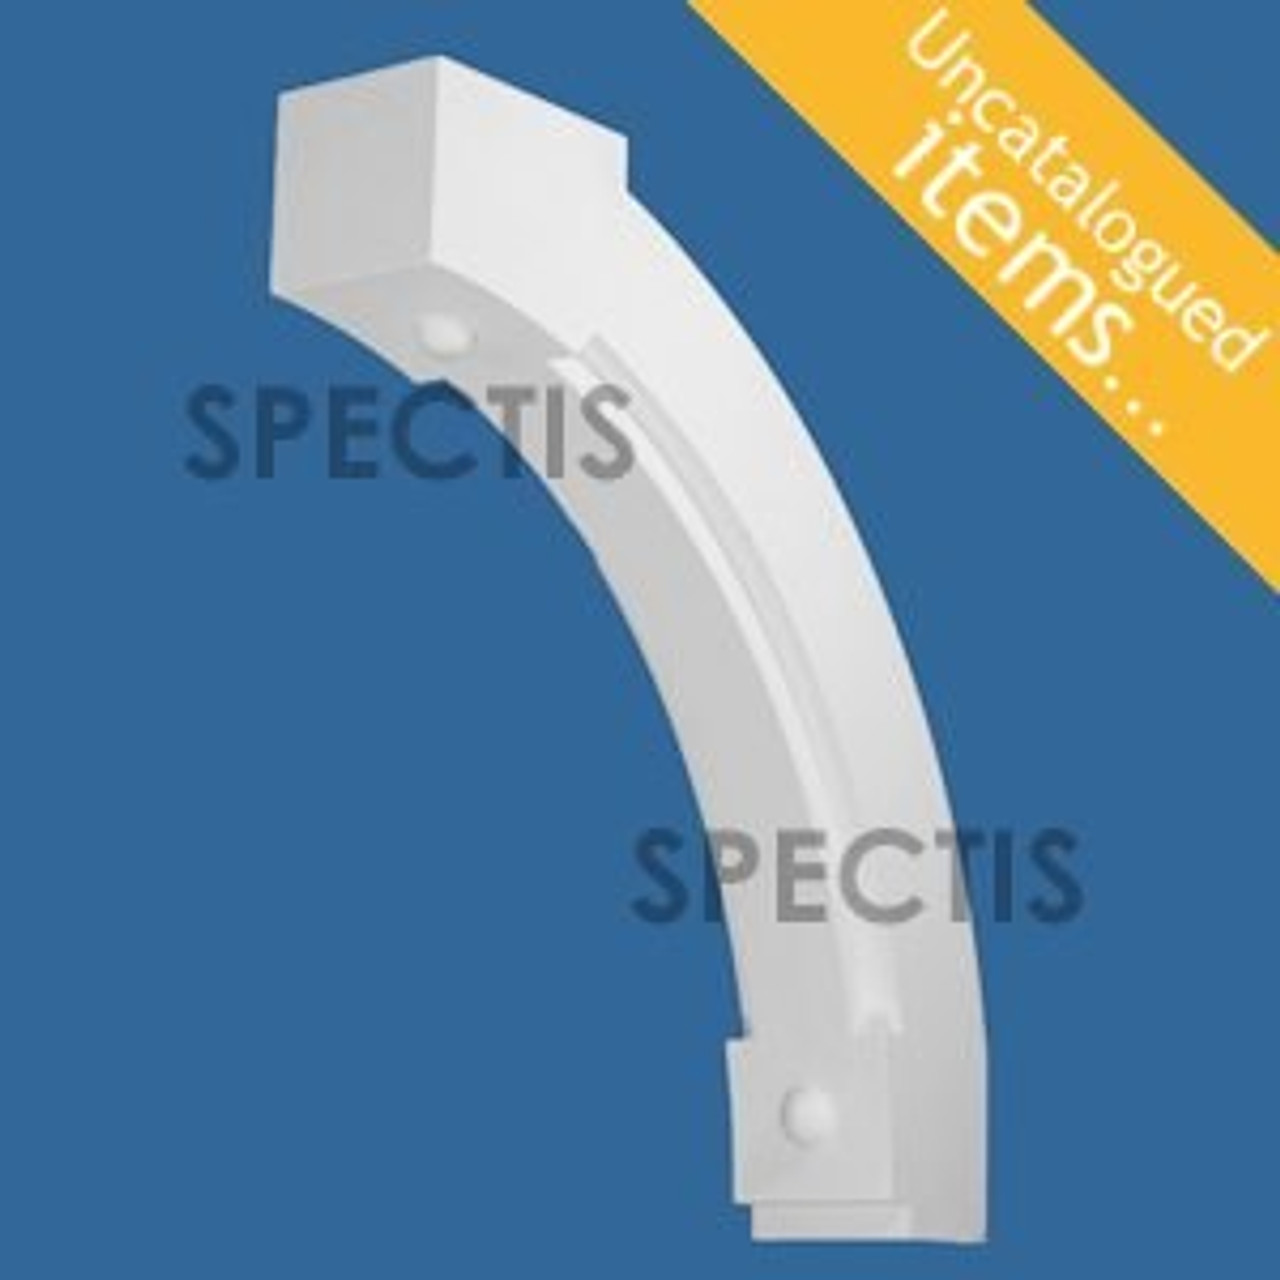 "BL3009 Spectis Eave Block or Bracket 5.5""W x 29""H x 26.75"" Projection"